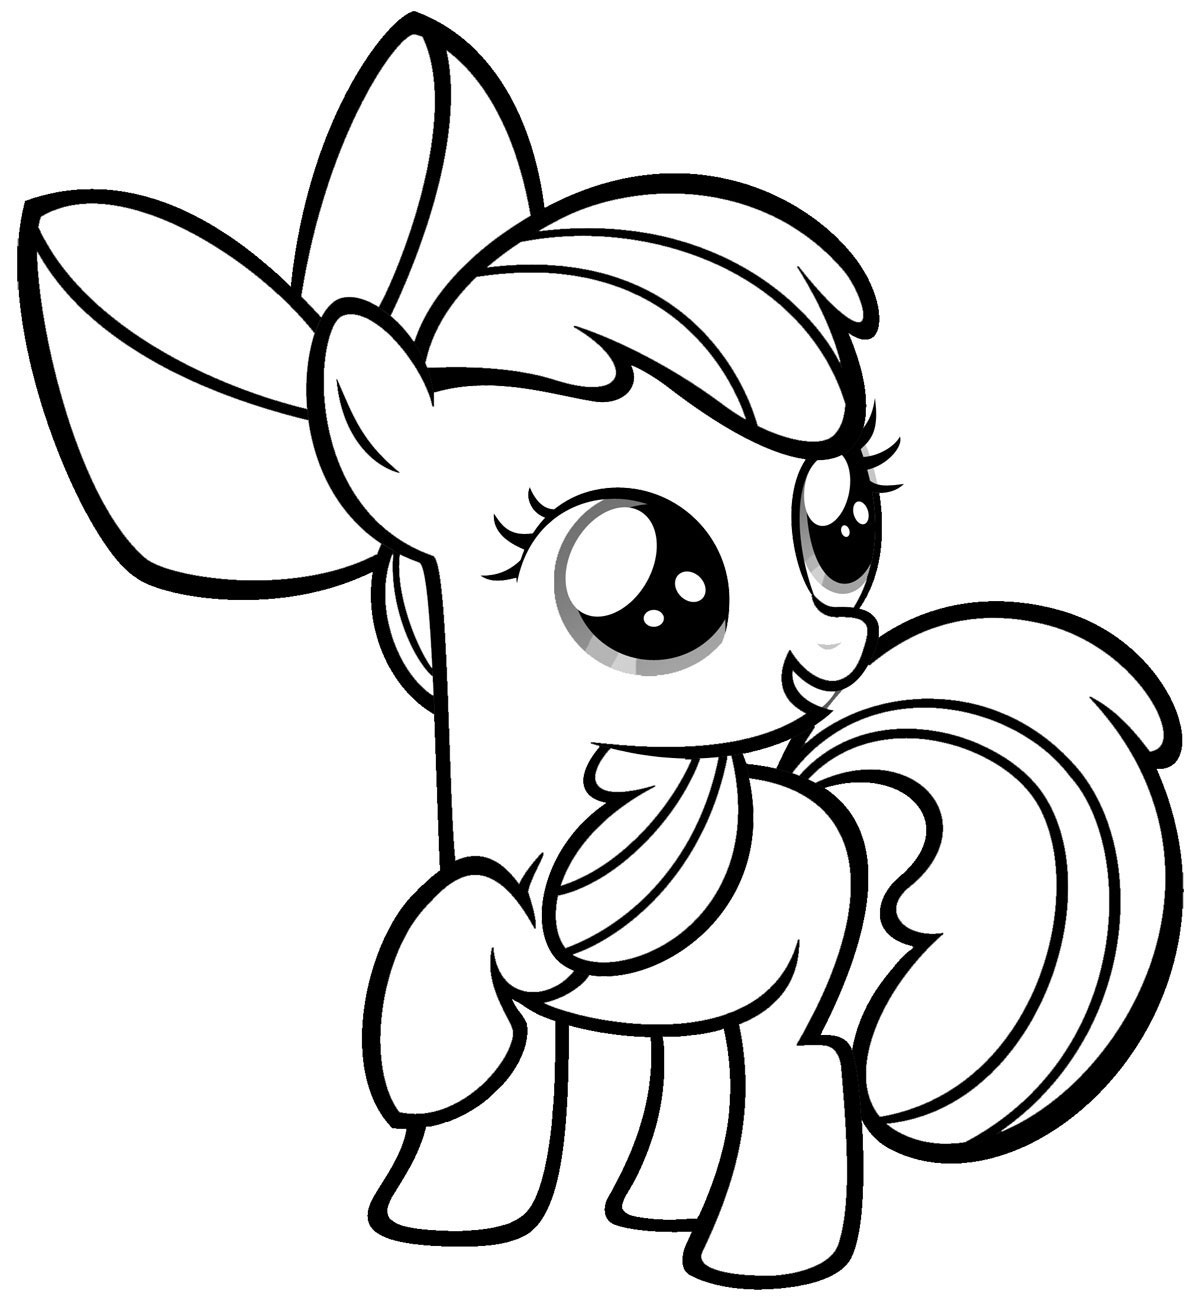 my little pony coloring pages - HD1108×1200